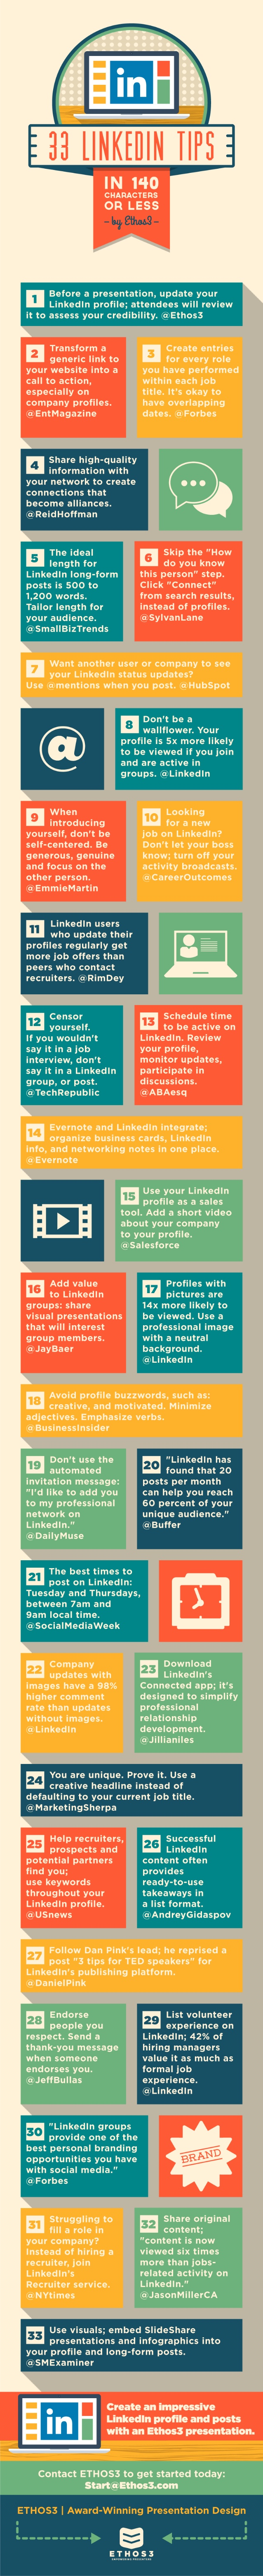 Infographic 33 Linkedin Tips